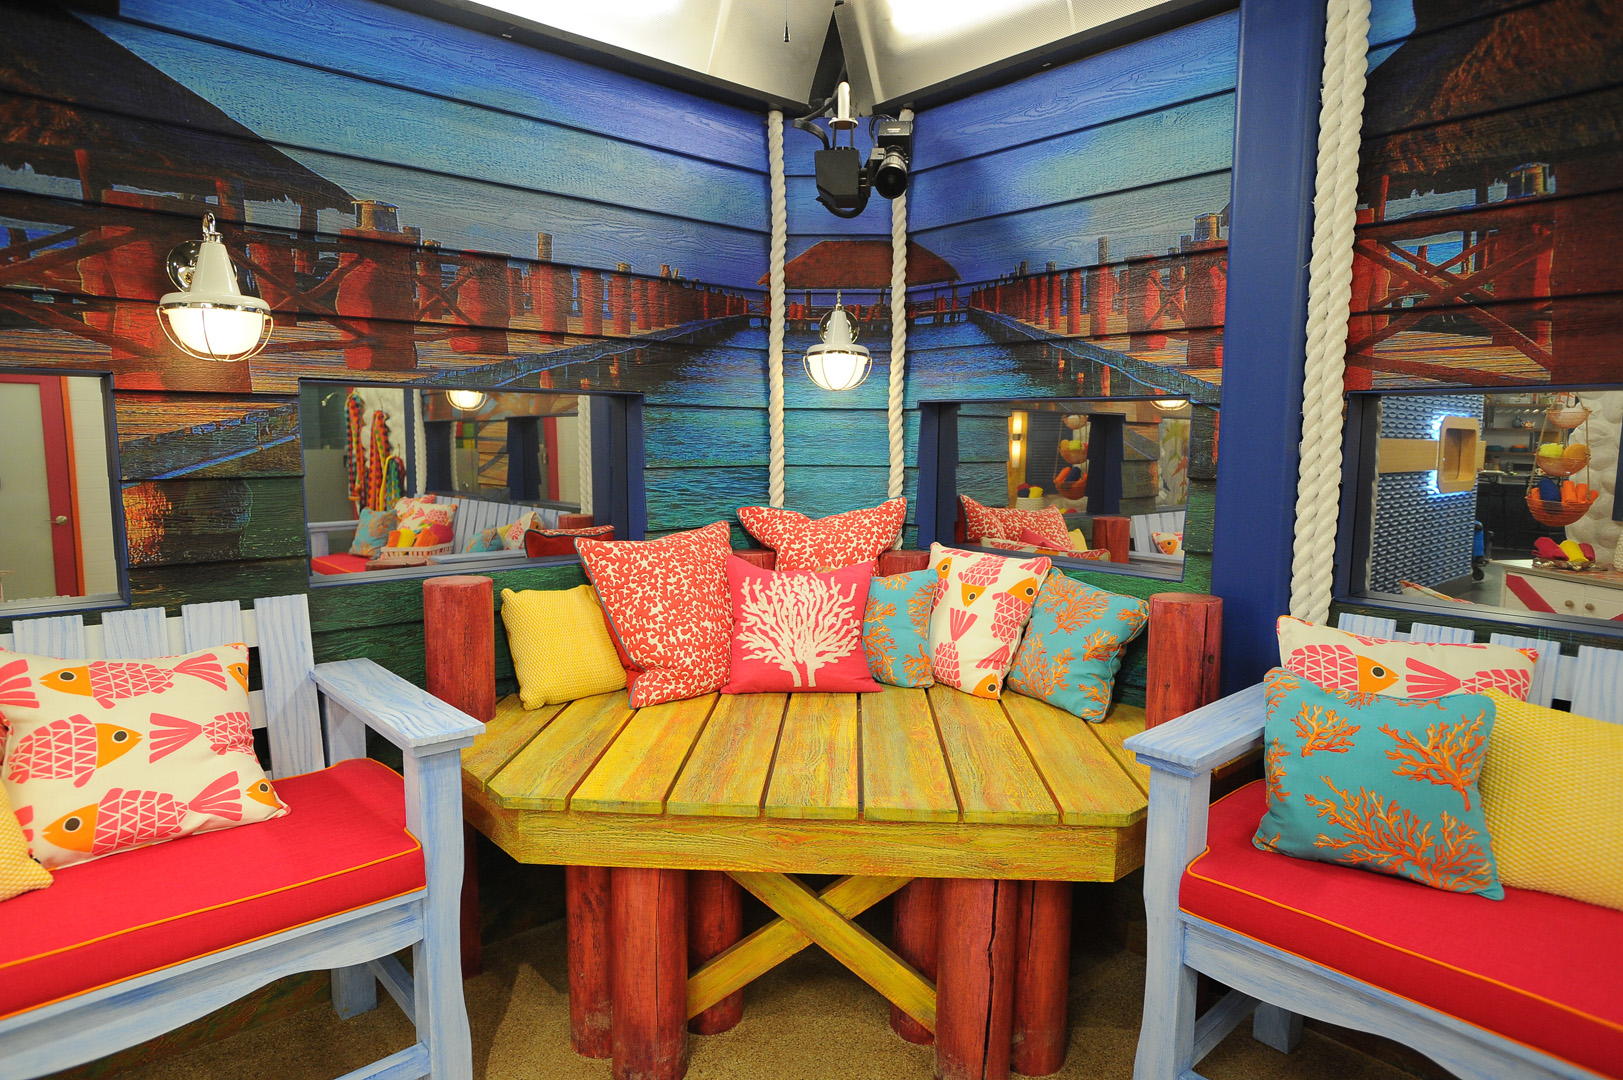 The Houseguests probably won't expect the lavatory to double as a tropical vacation.